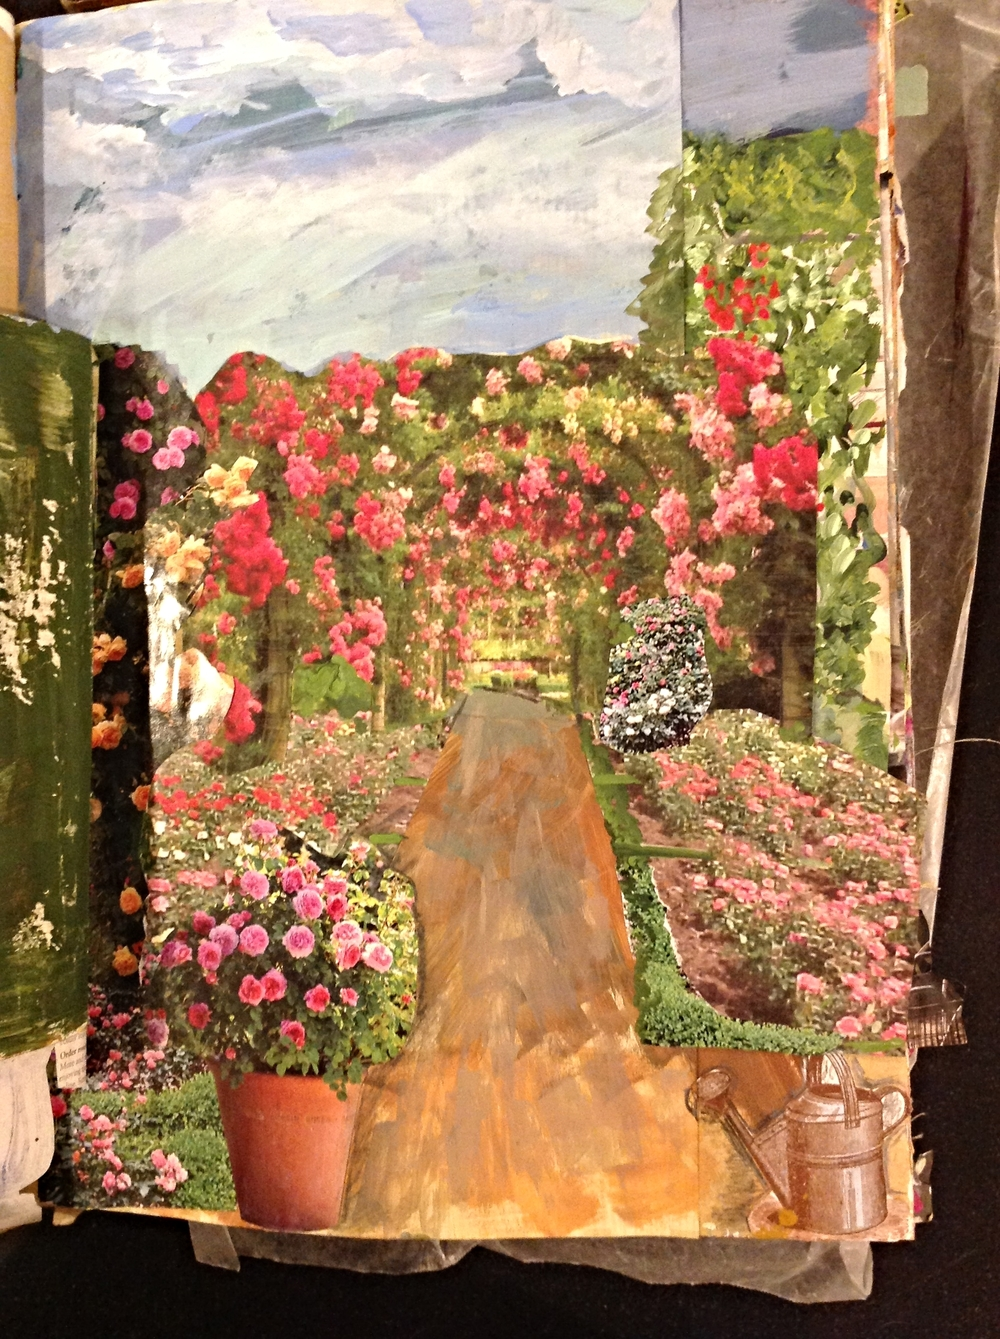 page 2..farther down the garden path and into the rose garden...